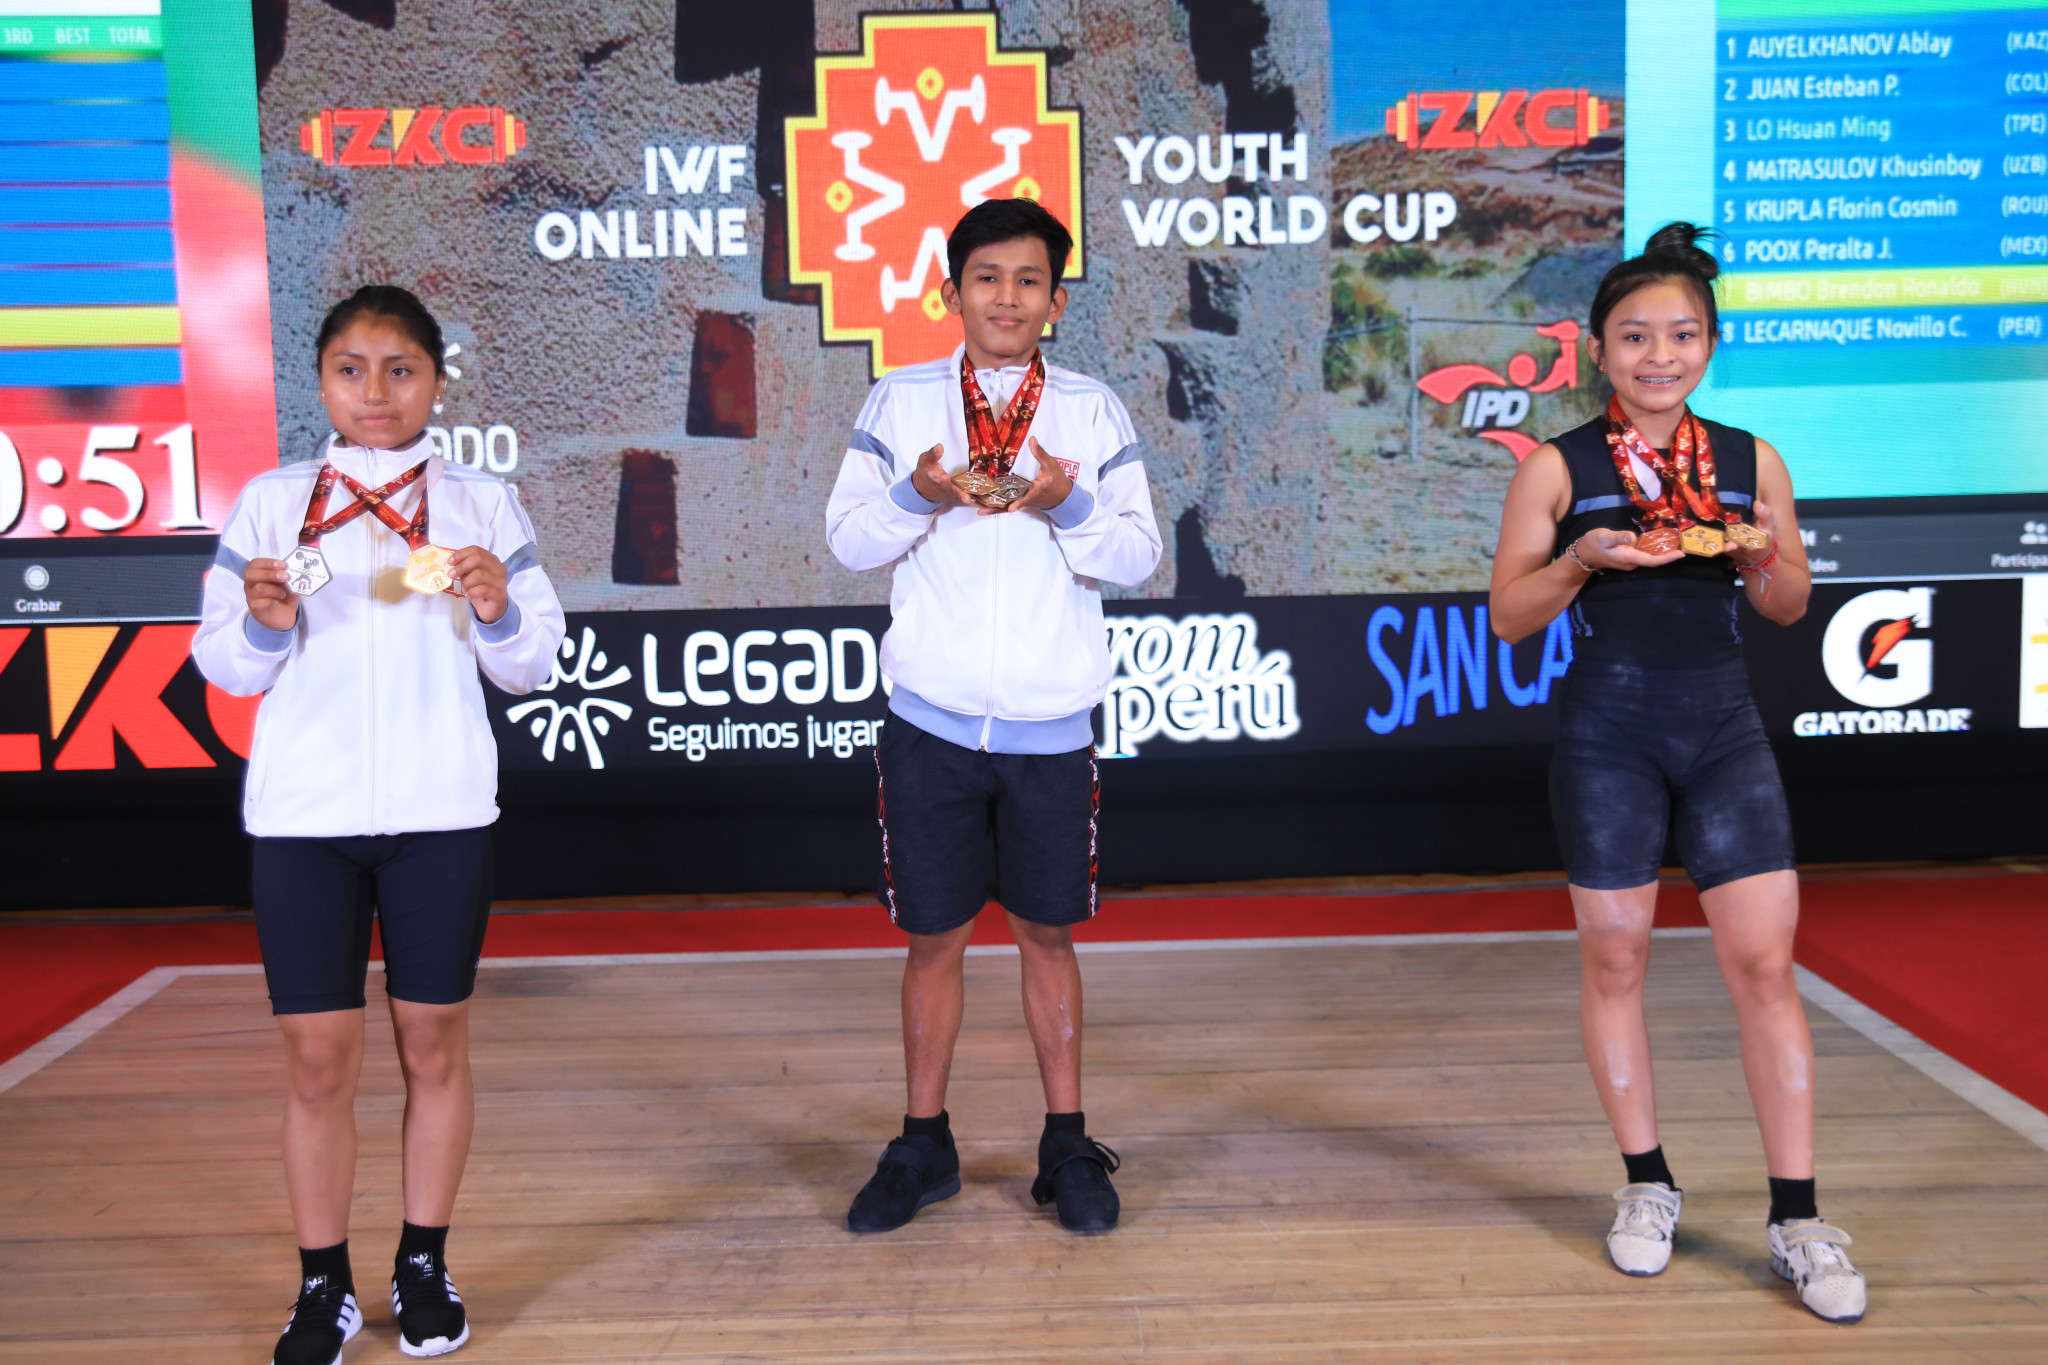 Virtual organisers Peru on top on first day of IWF Online Youth World Cup